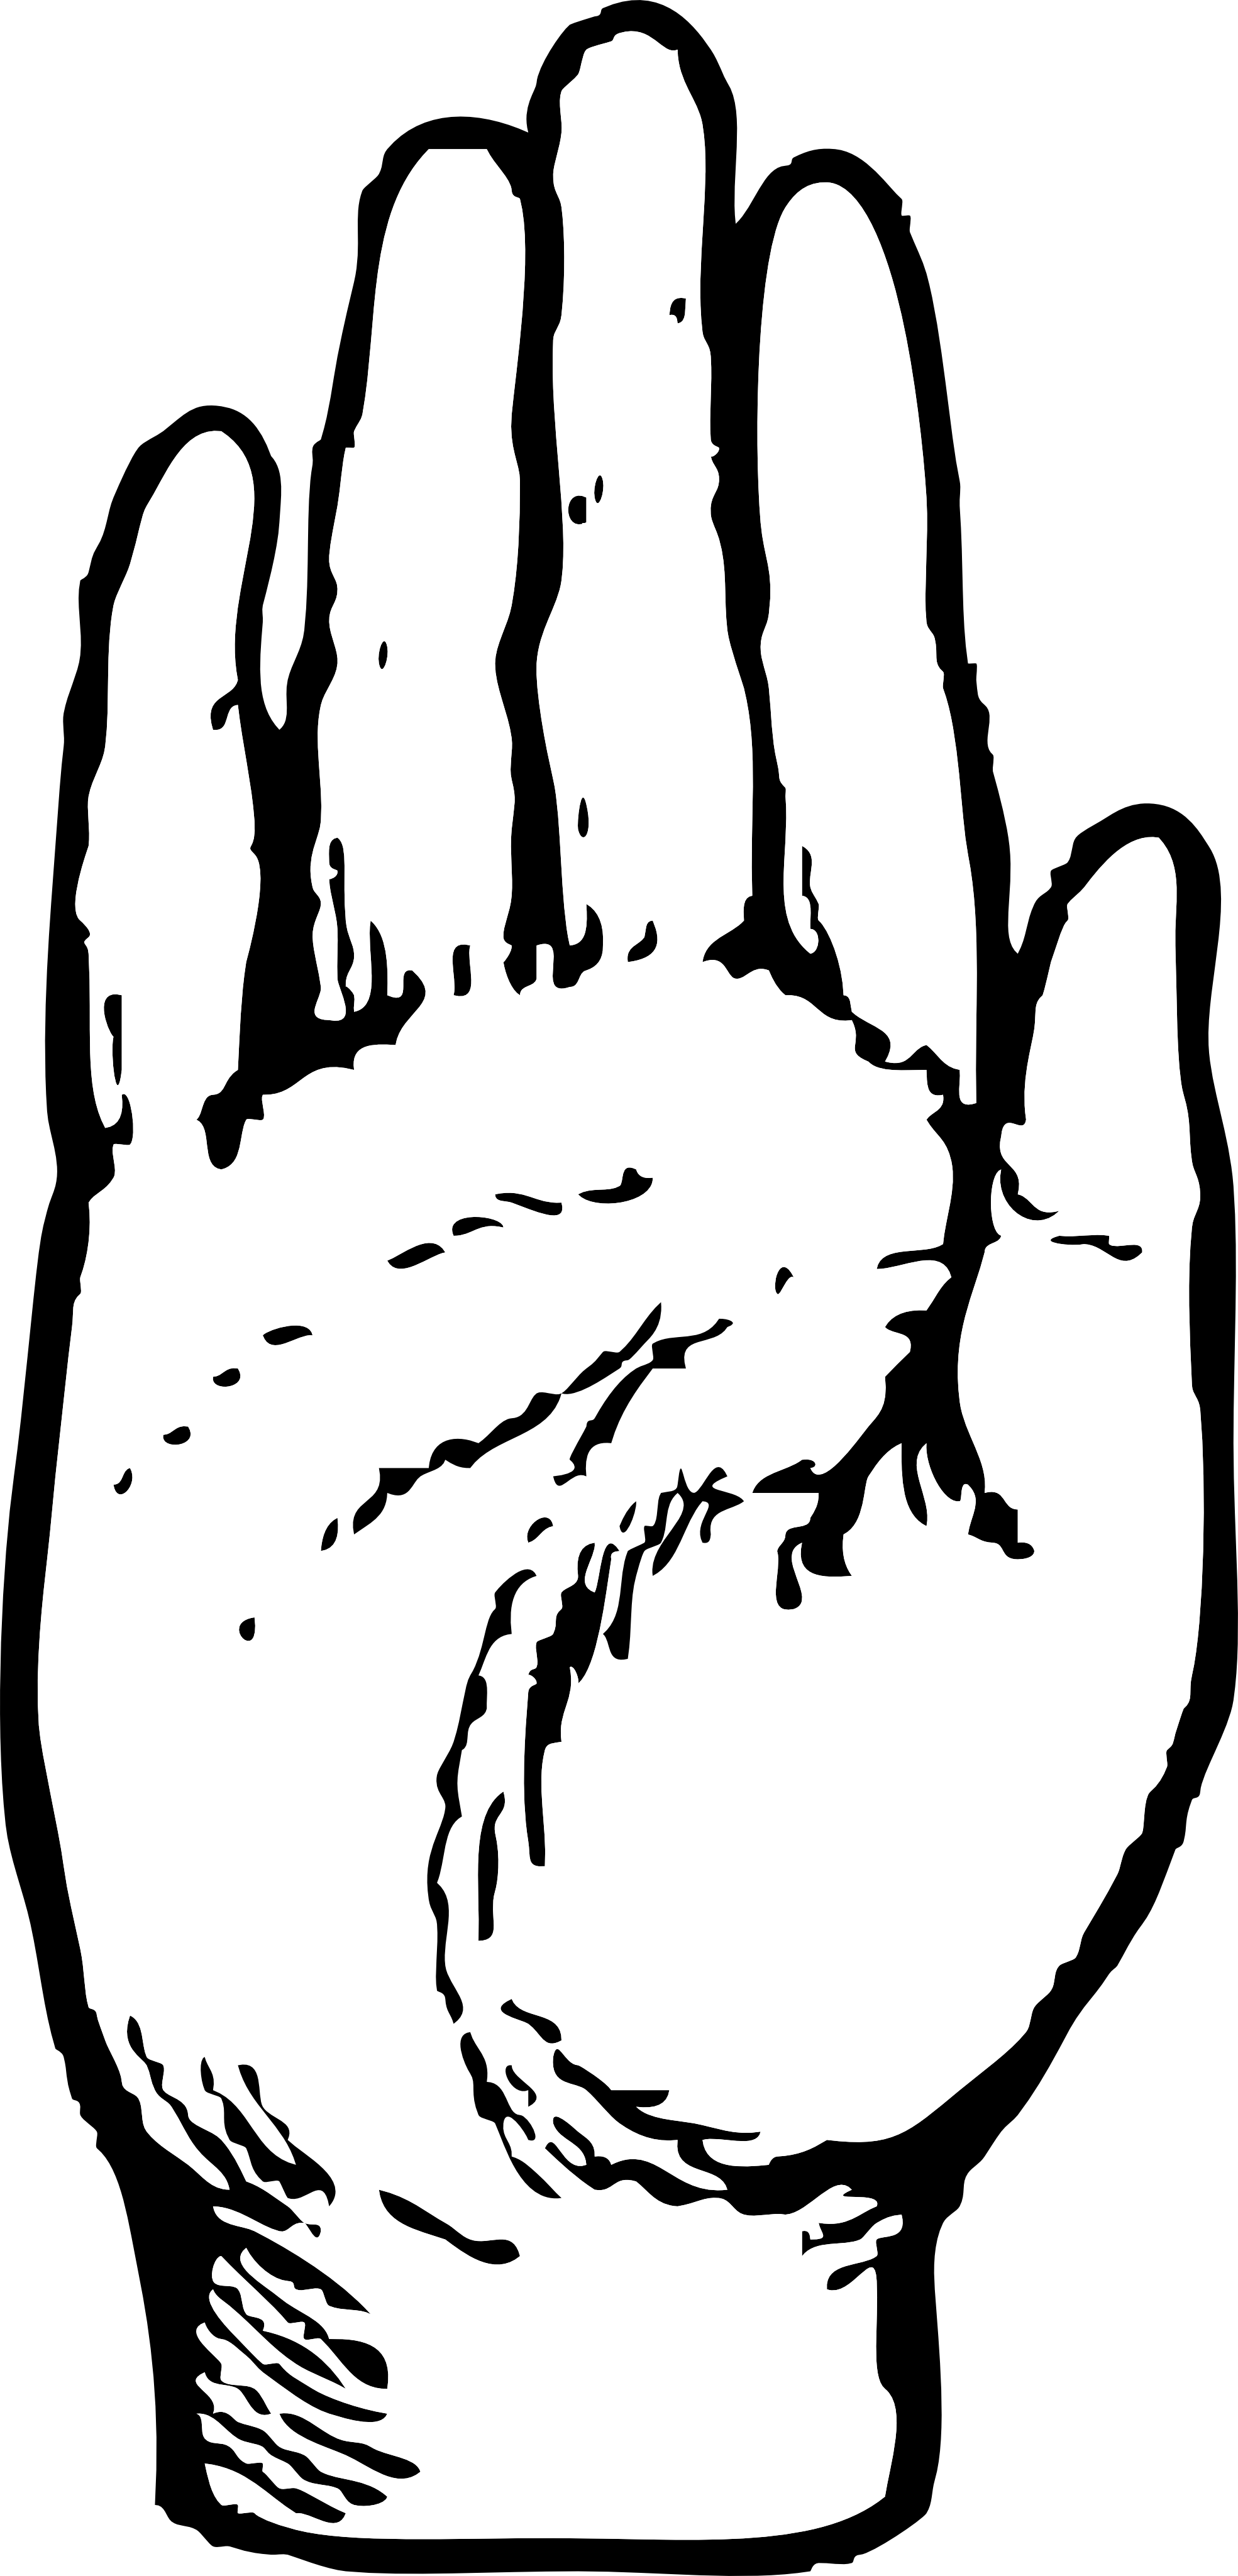 1969x4098 Helping Hands Clipart Free Clipart Images